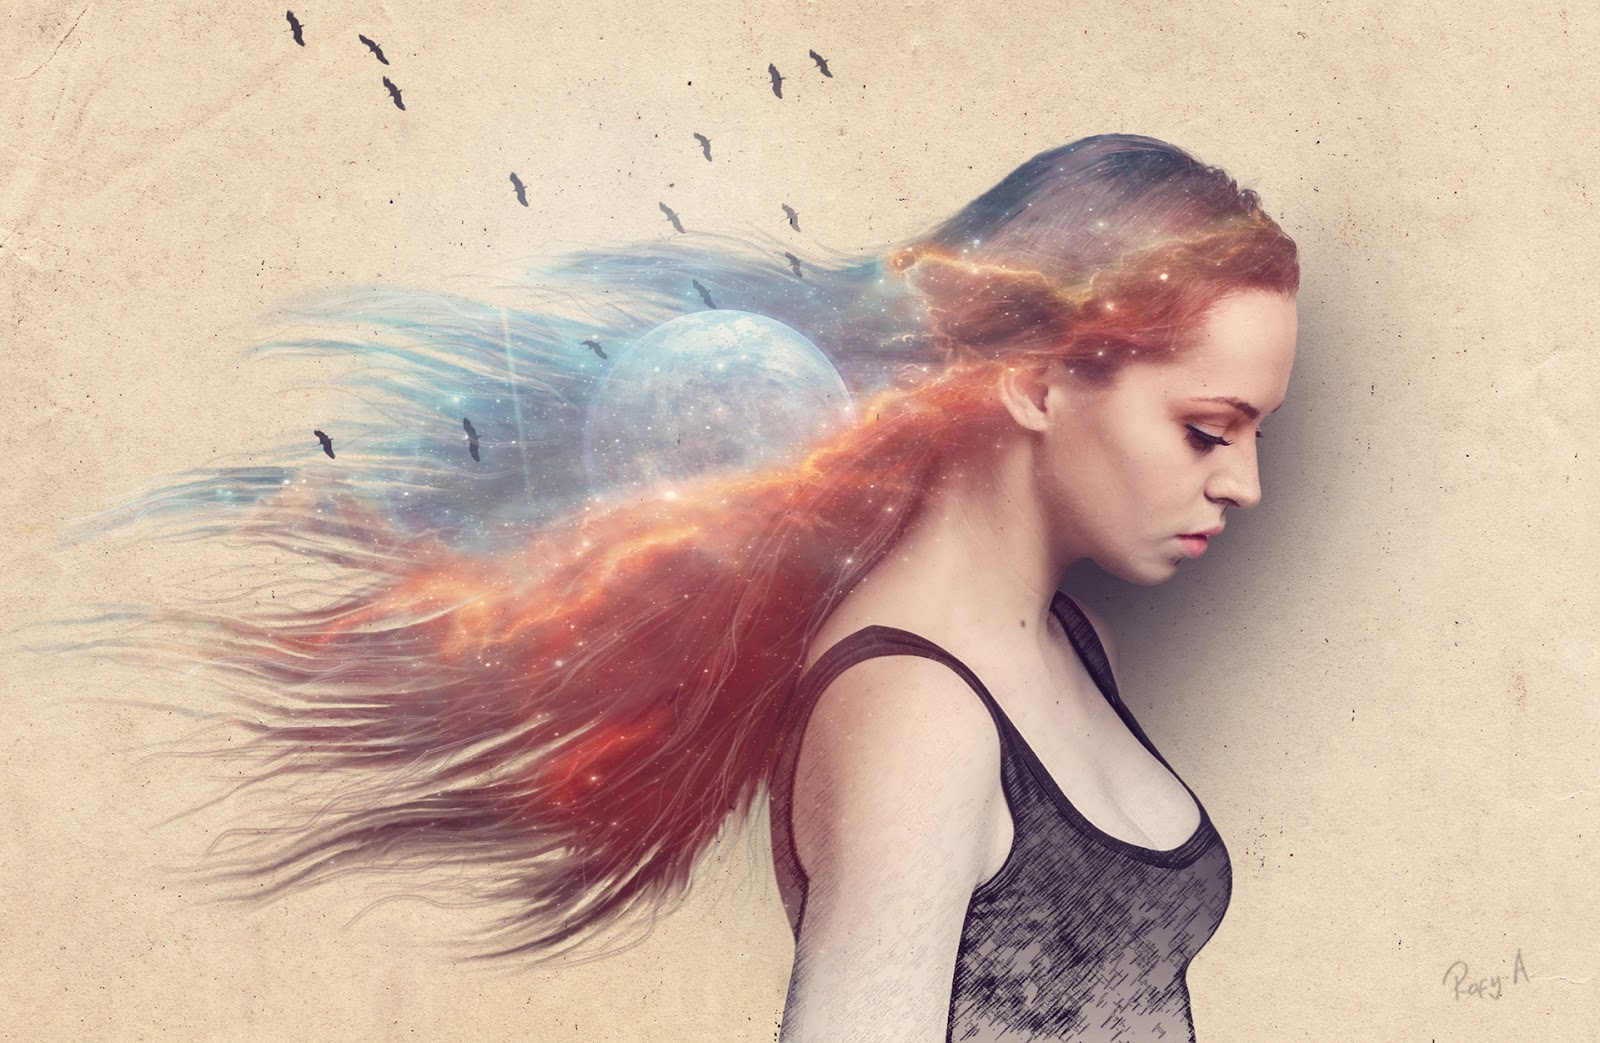 Abstract galaxy hair photo effects photoshop tutorial rafy a abstract galaxy hair photo effects photoshop tutorial baditri Images